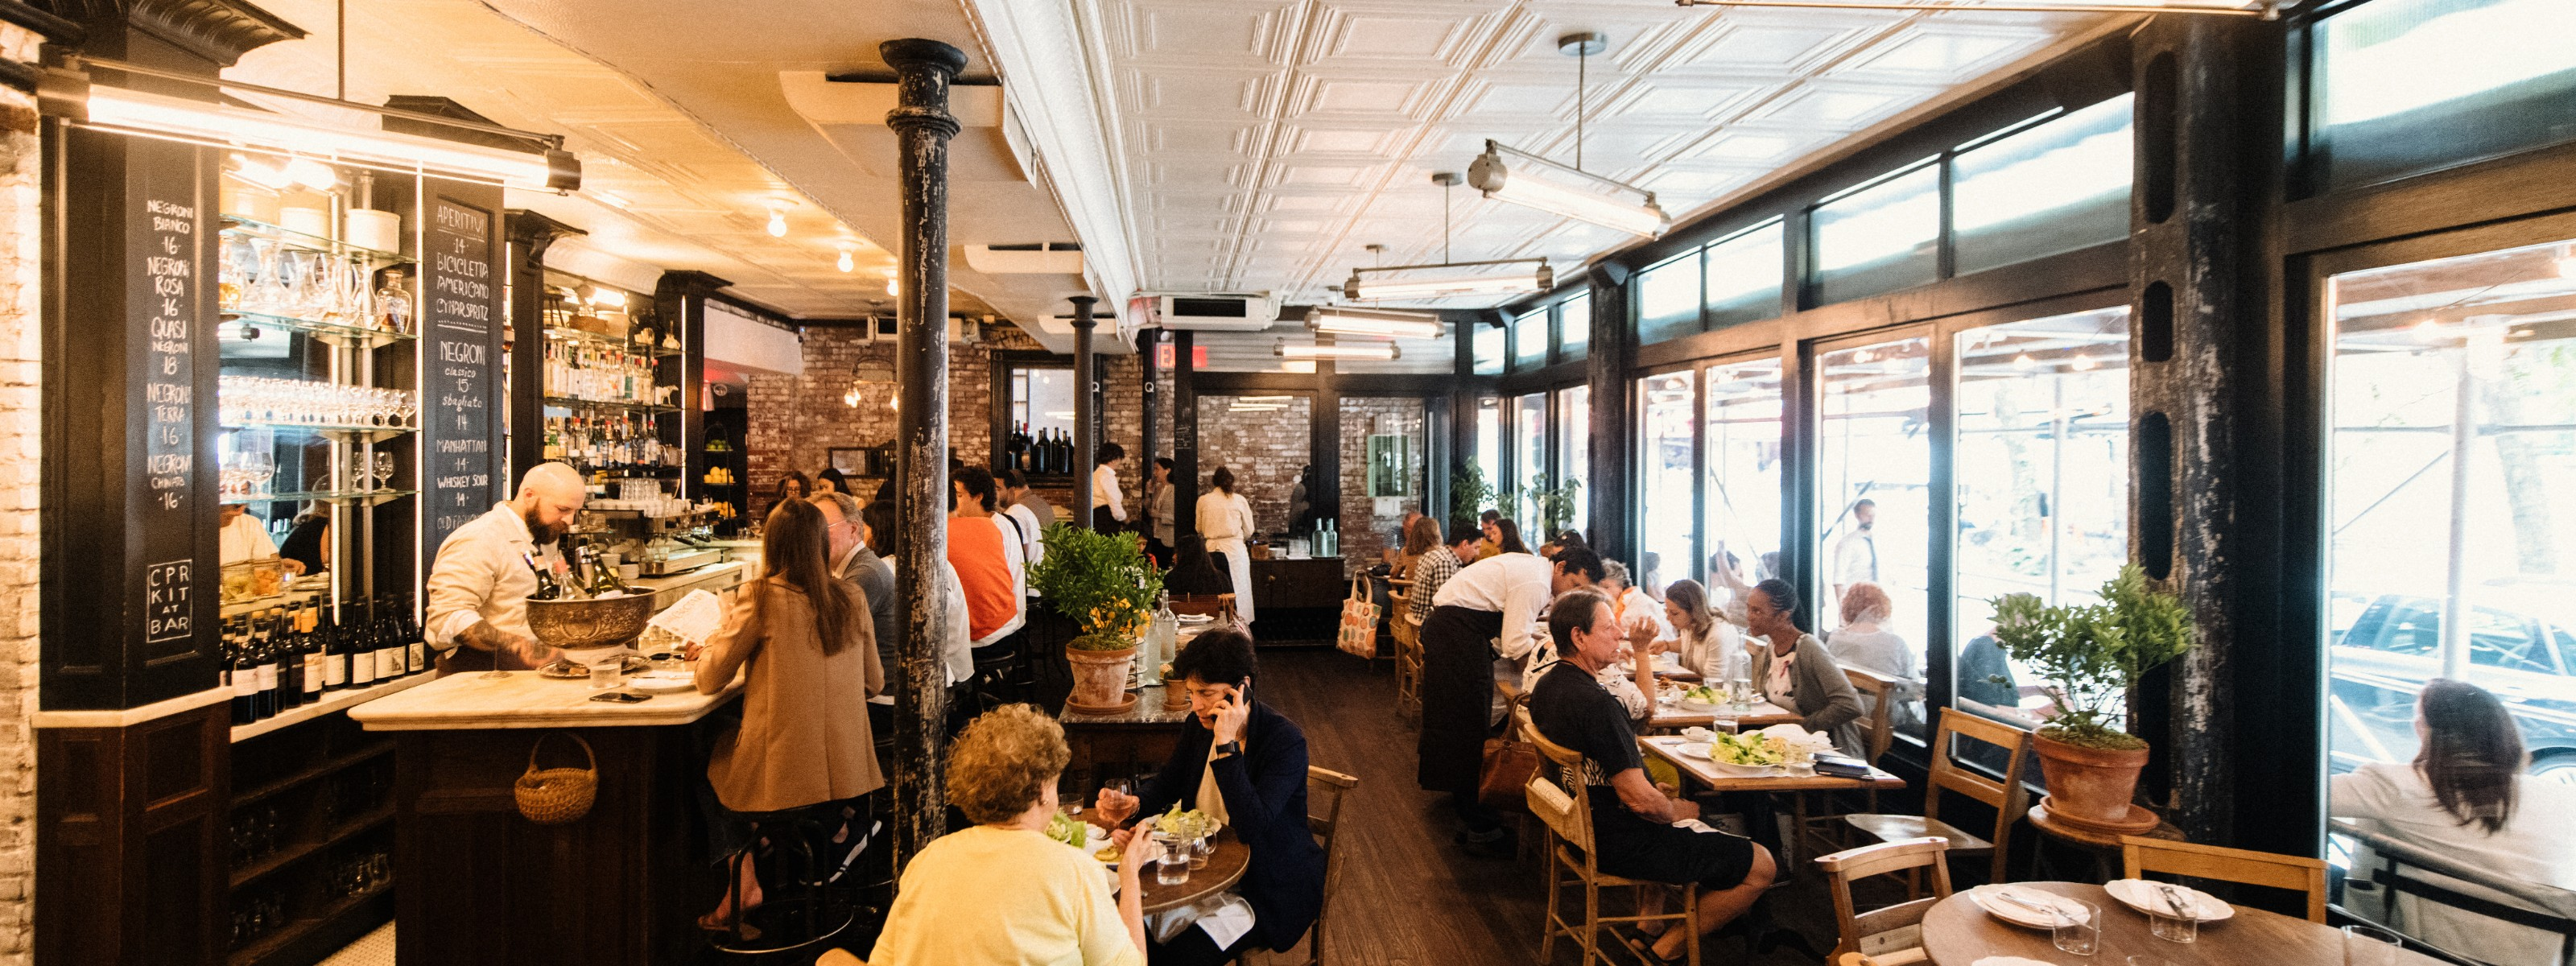 The Best Italian Restaurants In The West Village - West Village - New York - The Infatuation